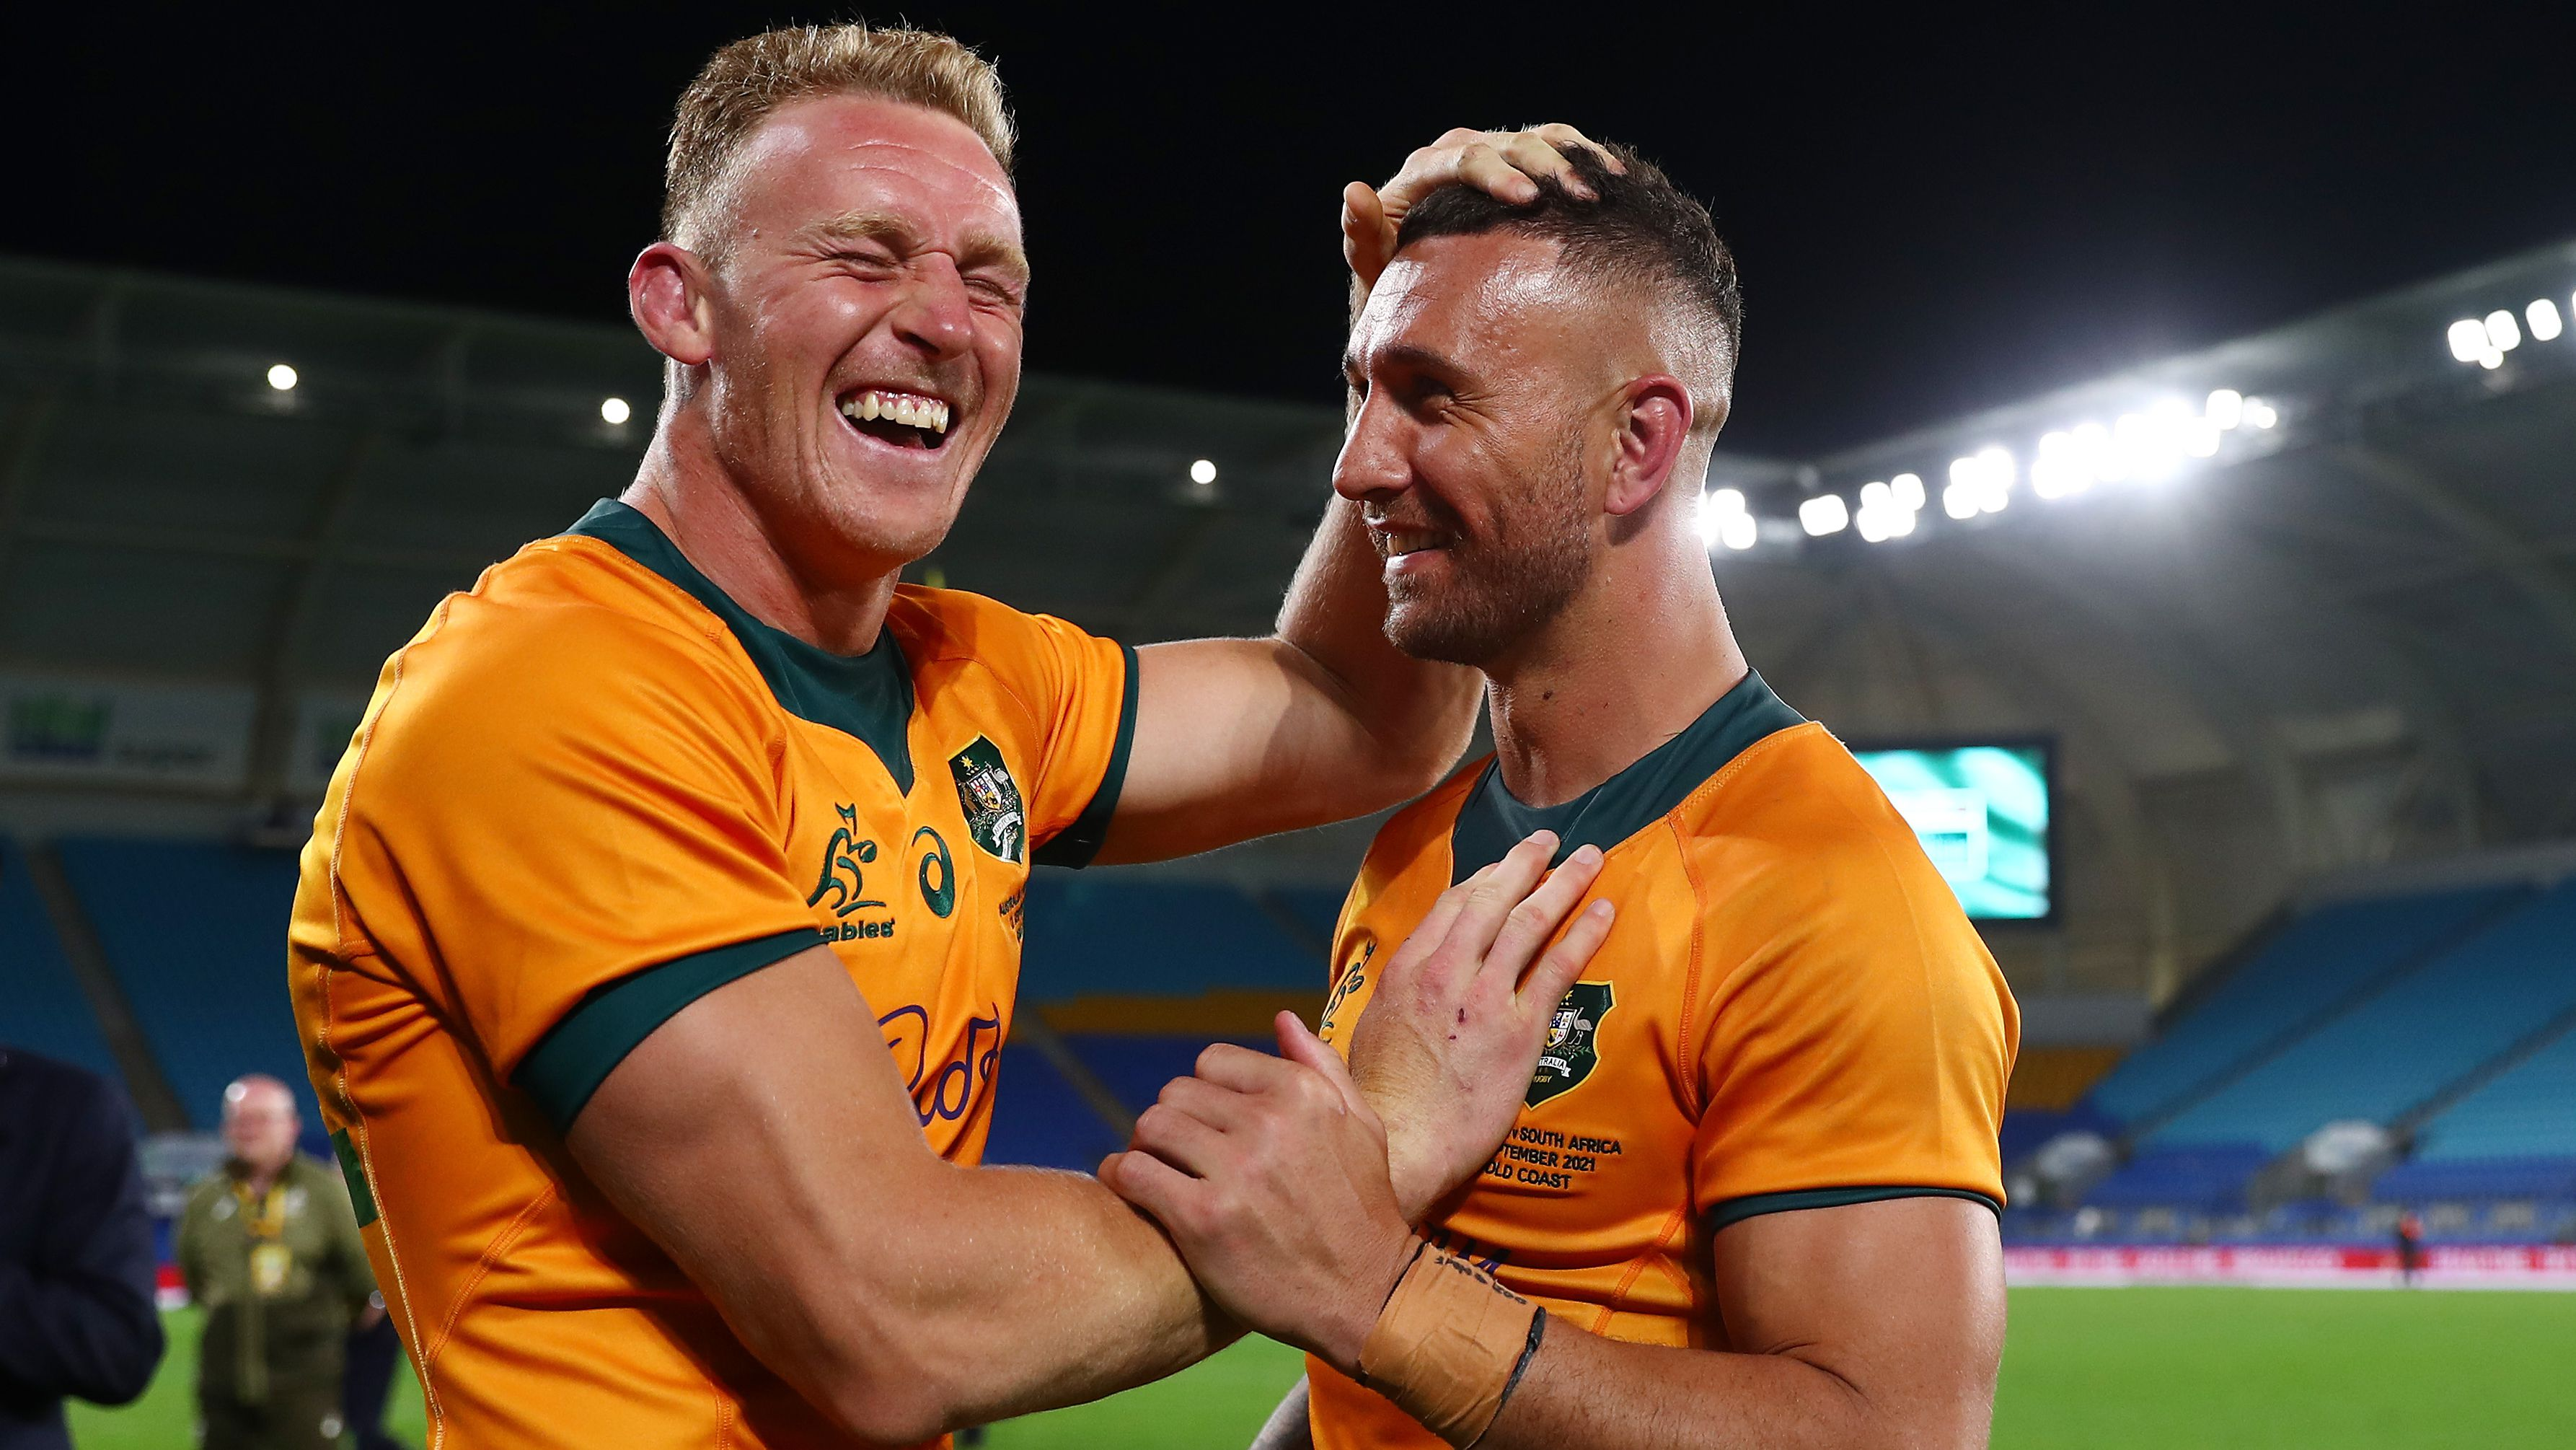 'Mr Fix It' wins hotly contested Wallabies jersey